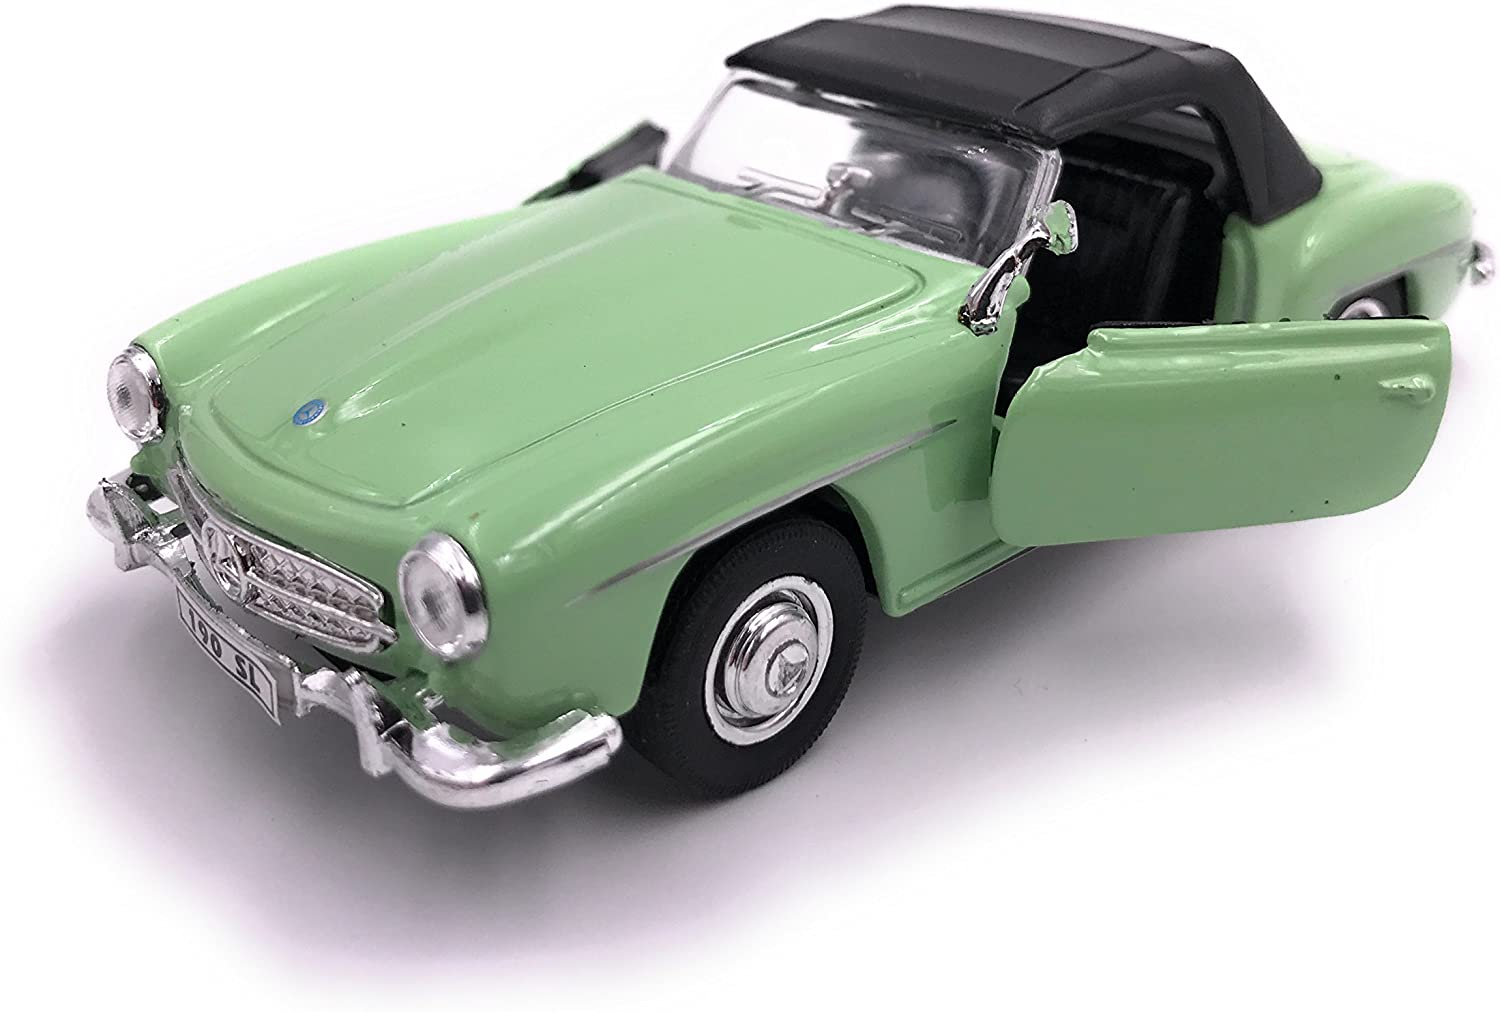 34-1 Welly Mercedes Benz 190 SL model car license product 1 39 Green closed